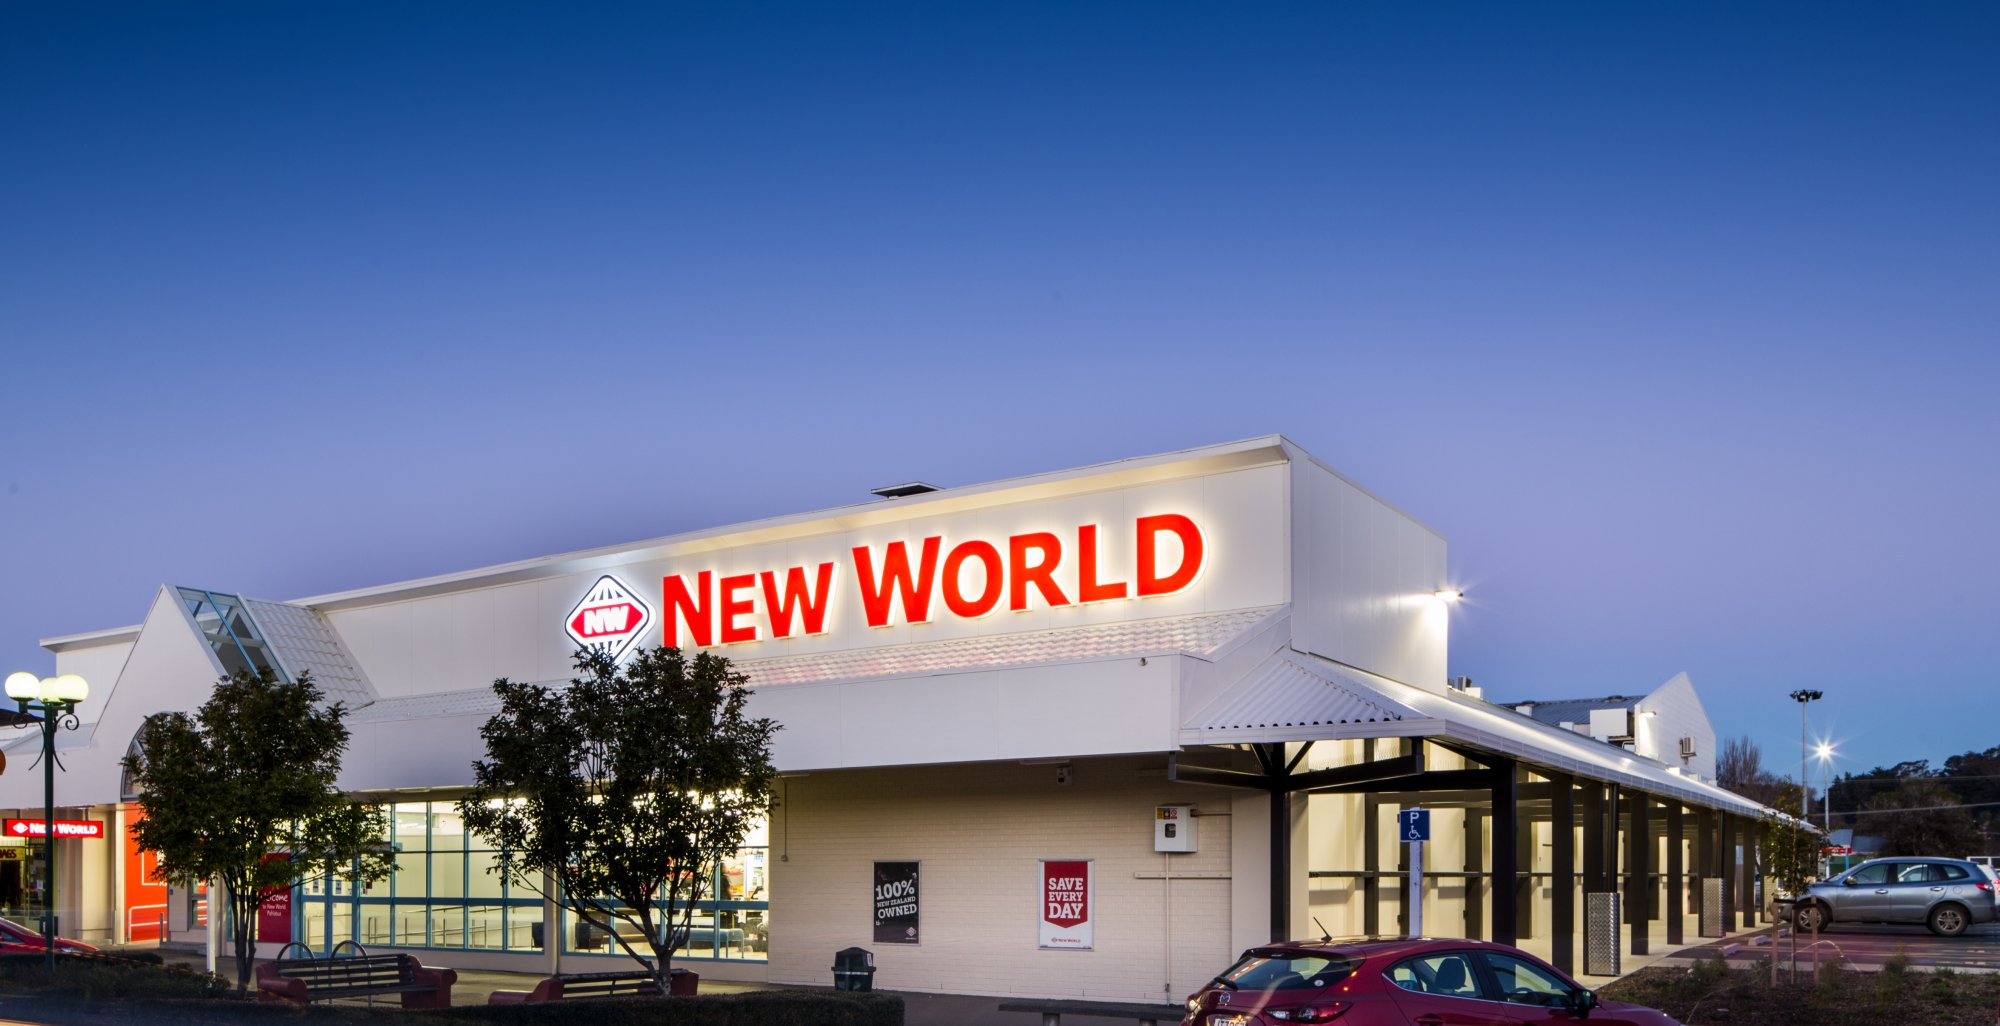 New world picture 77